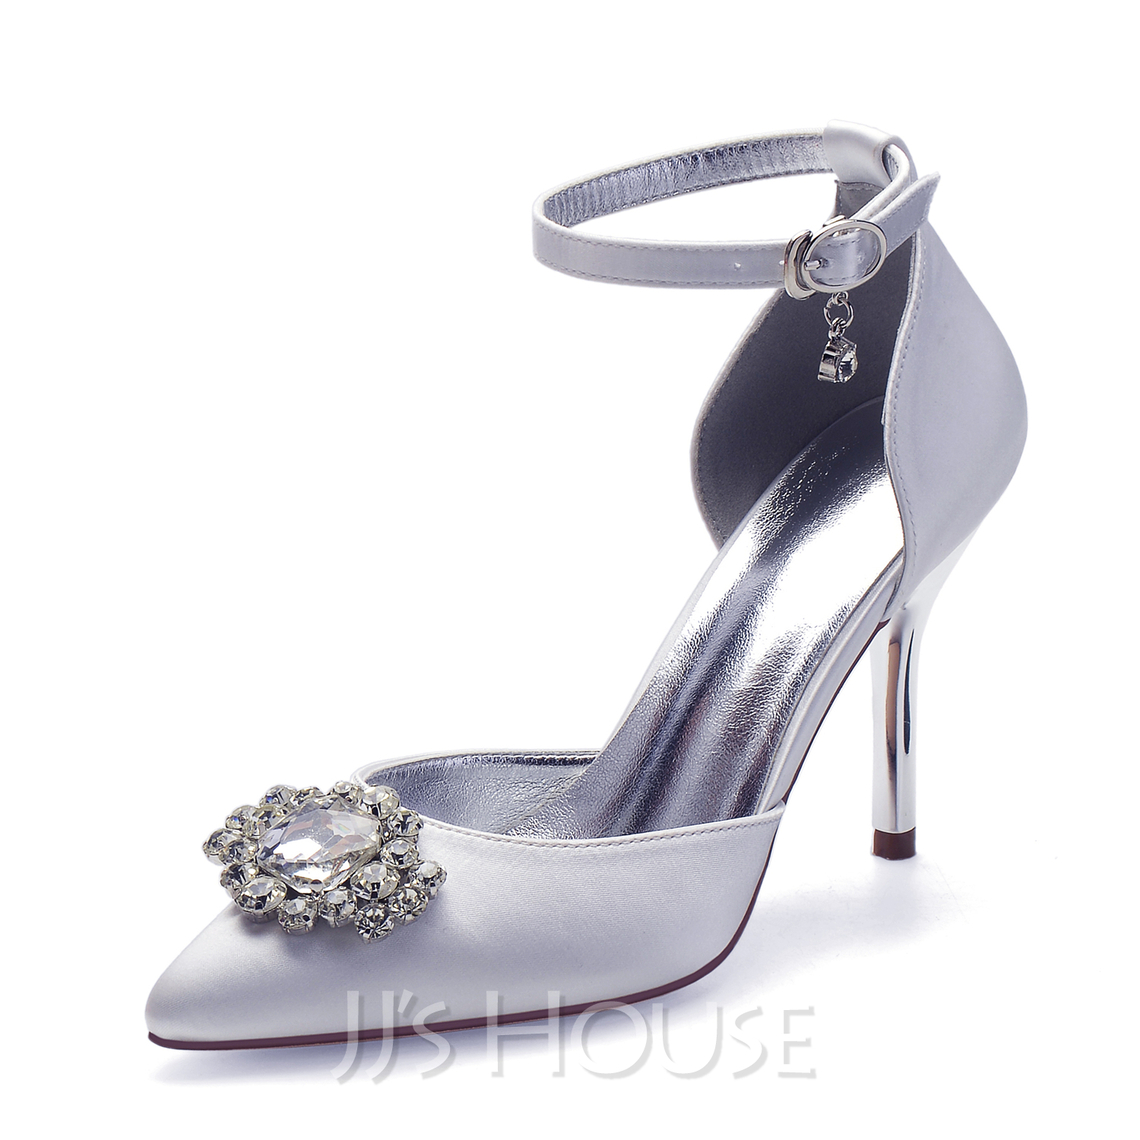 Women's Satin Stiletto Heel Pumps With Rhinestone